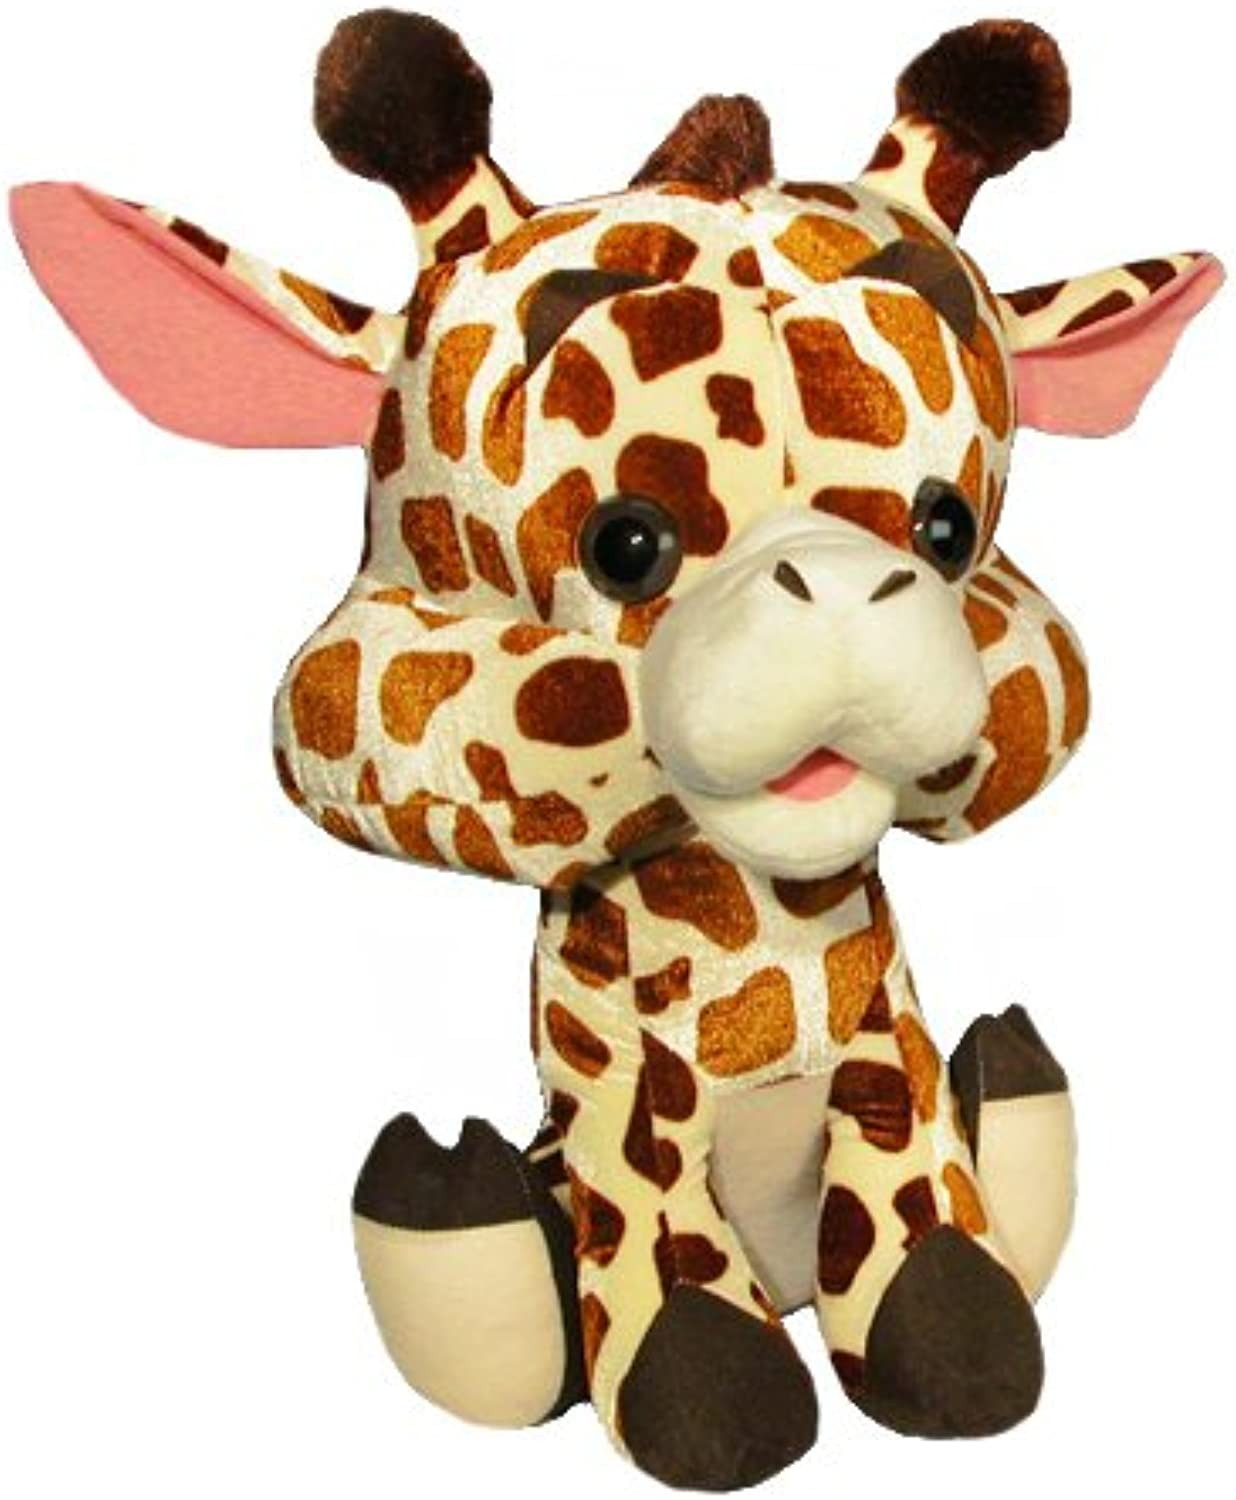 ToySource 4-140 S Gerry The Giraffe Collectible Plush, Size 14.5